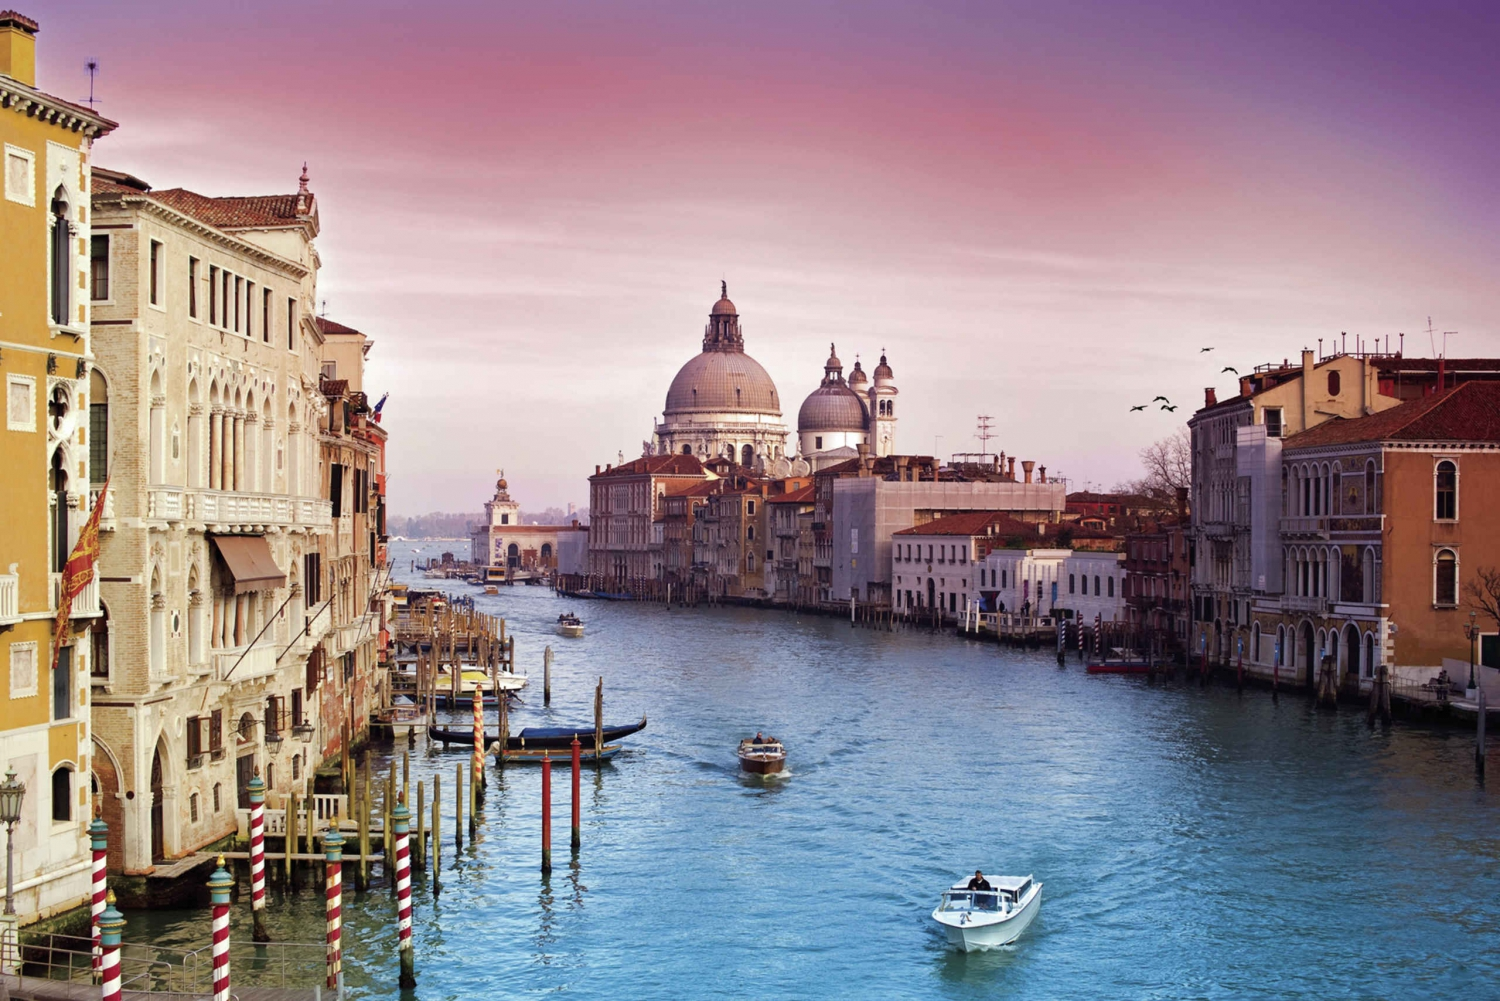 From Umag: A Full Day Boat Trip to Venice